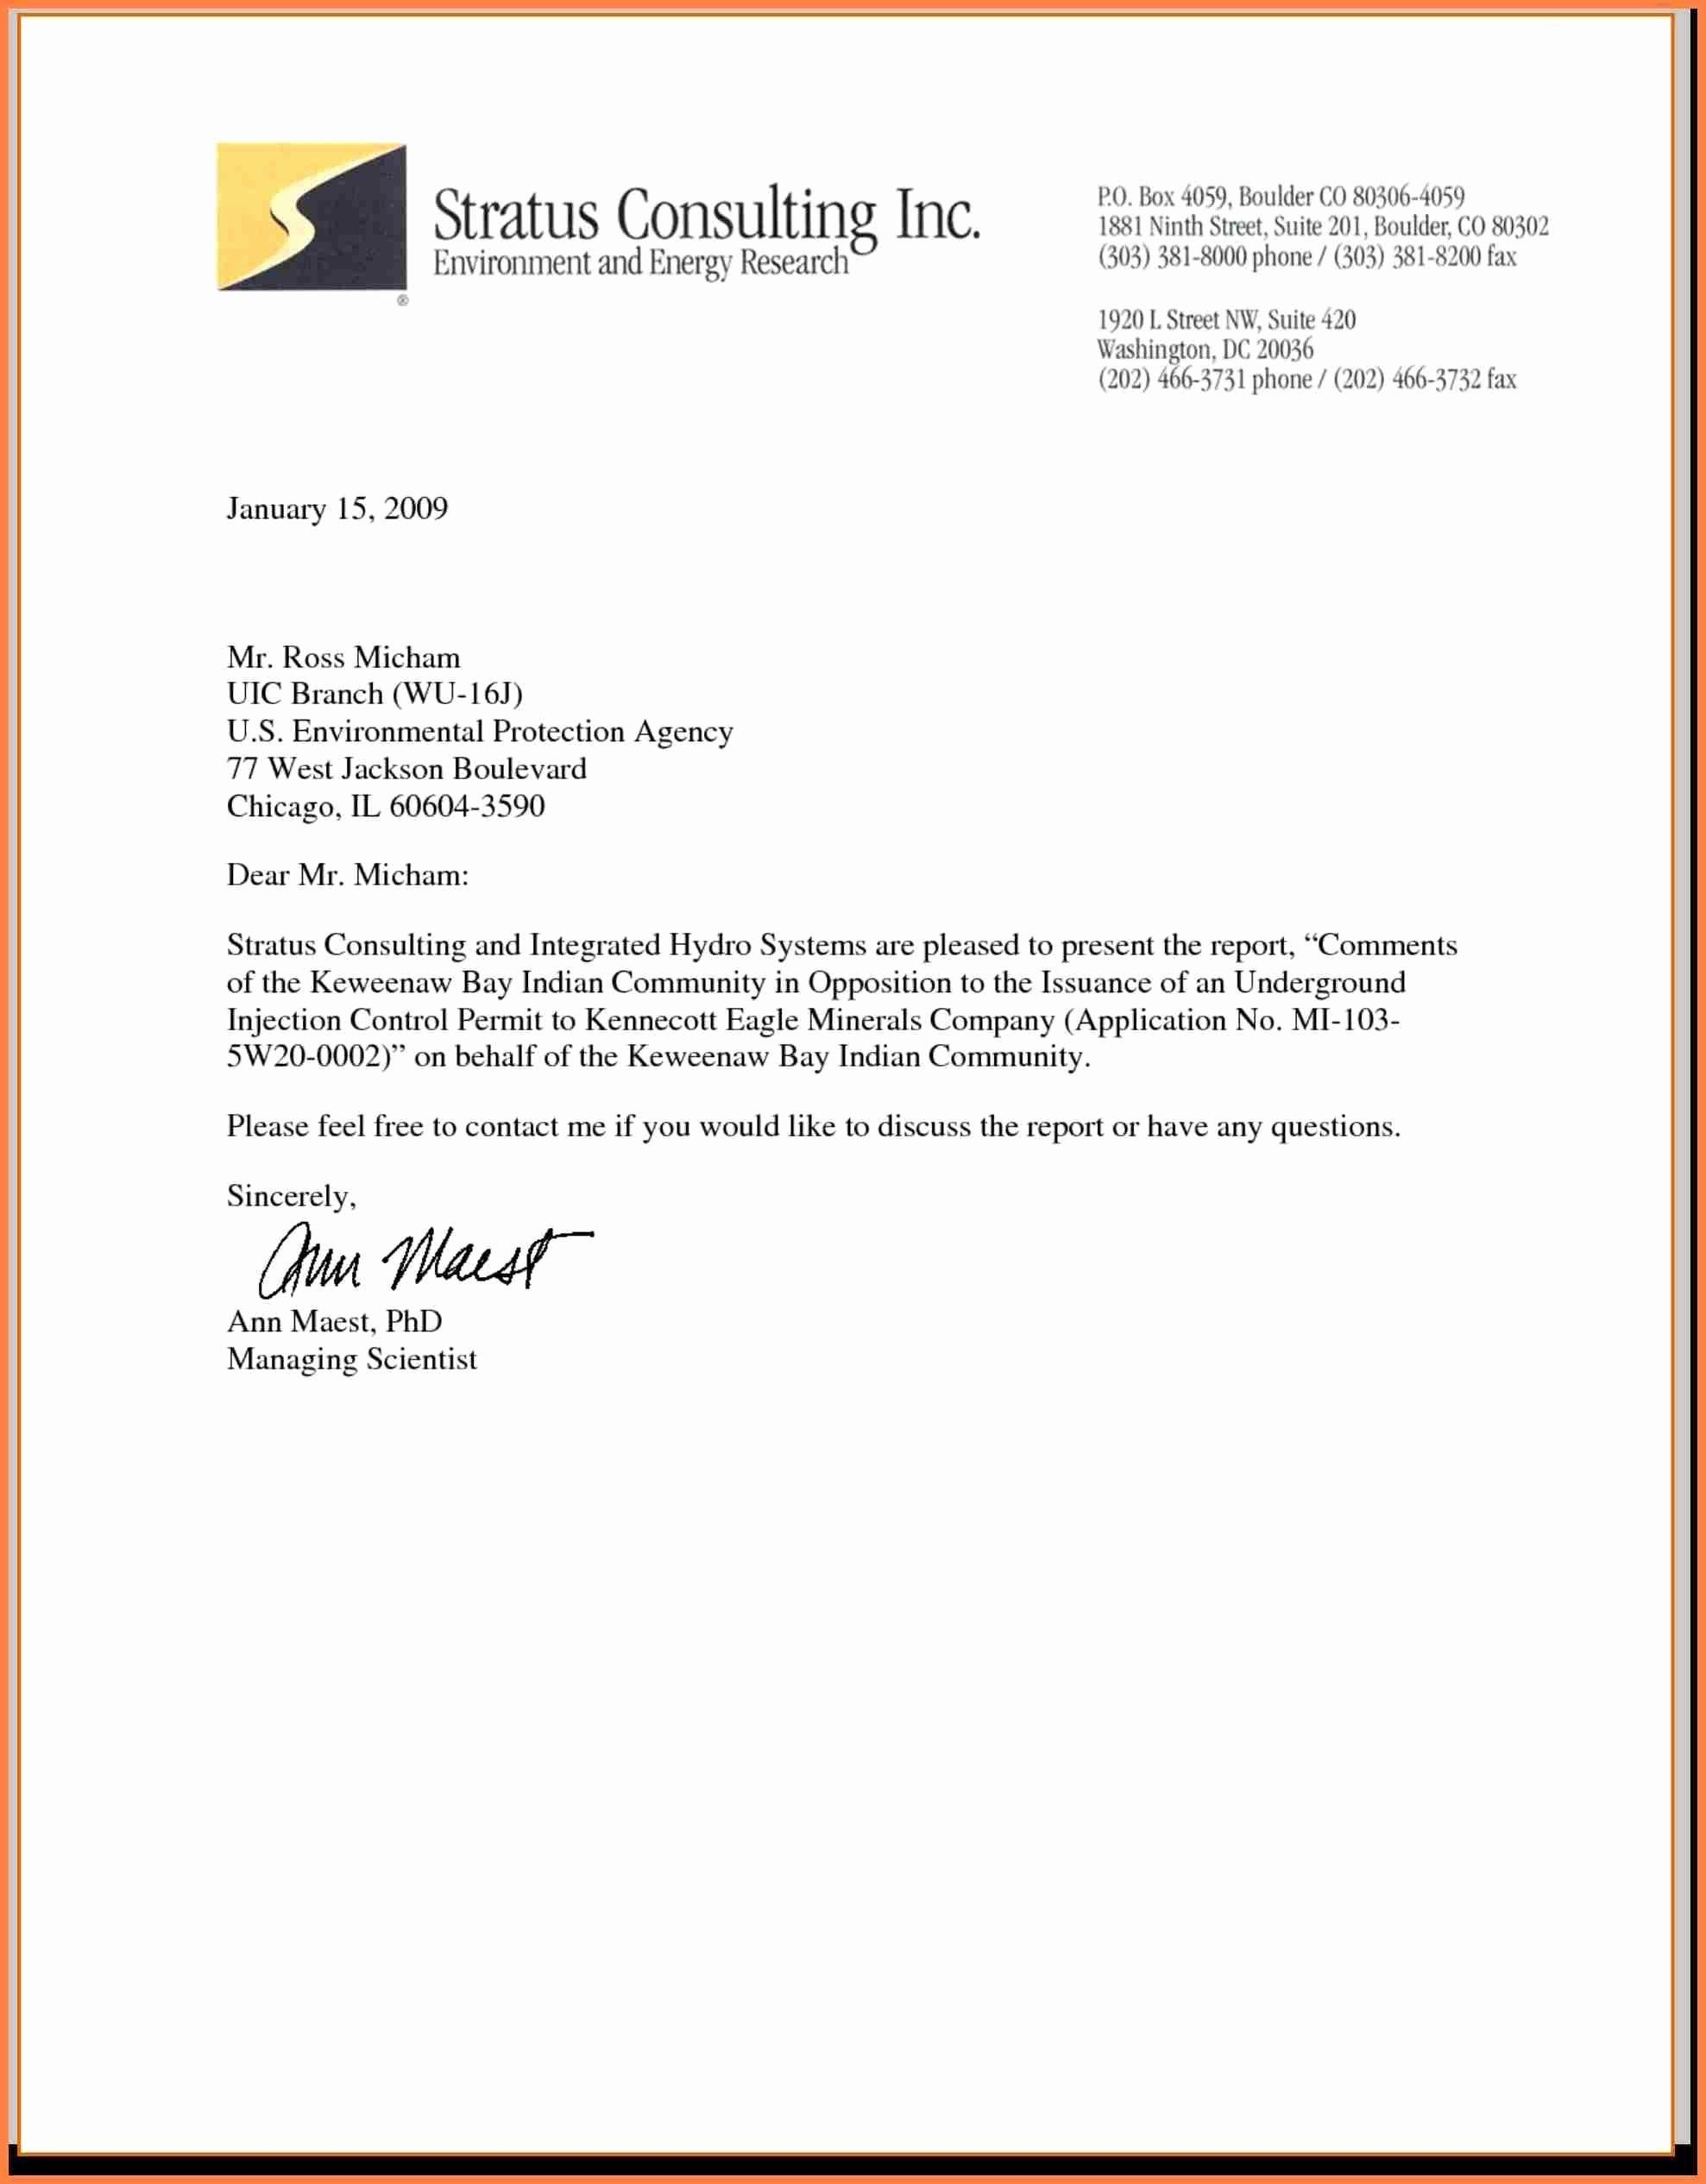 Download Best Of Letterhead Template Word Online at https